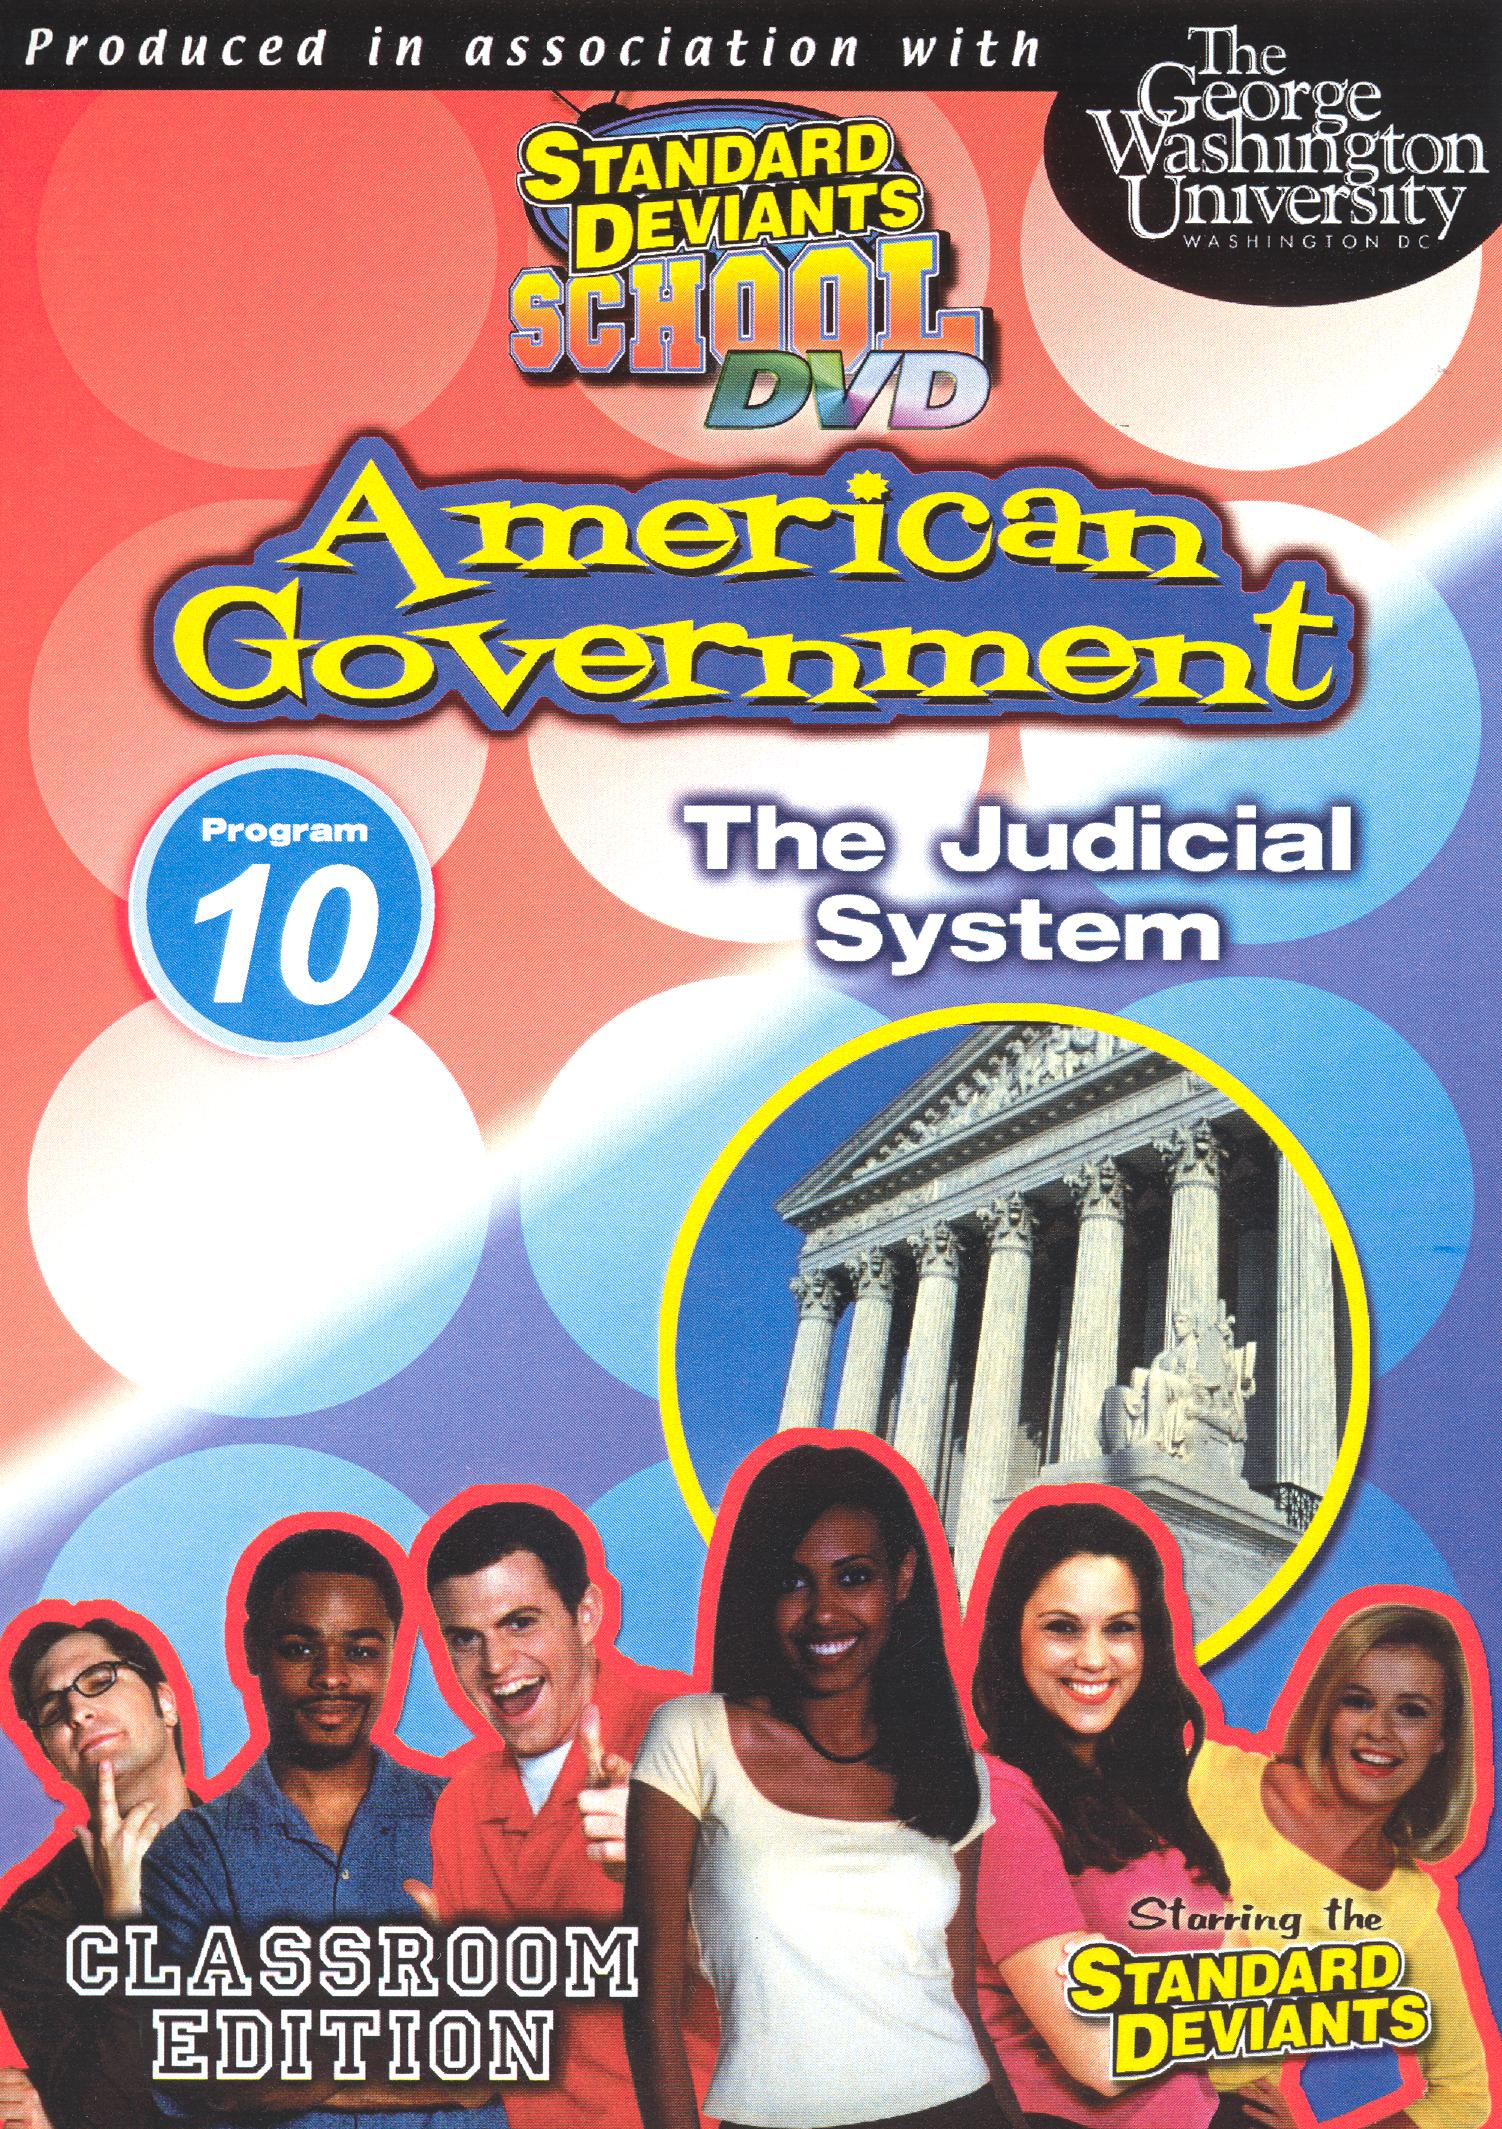 Standard Deviants School: American Government, Module 10 - The Judicial System